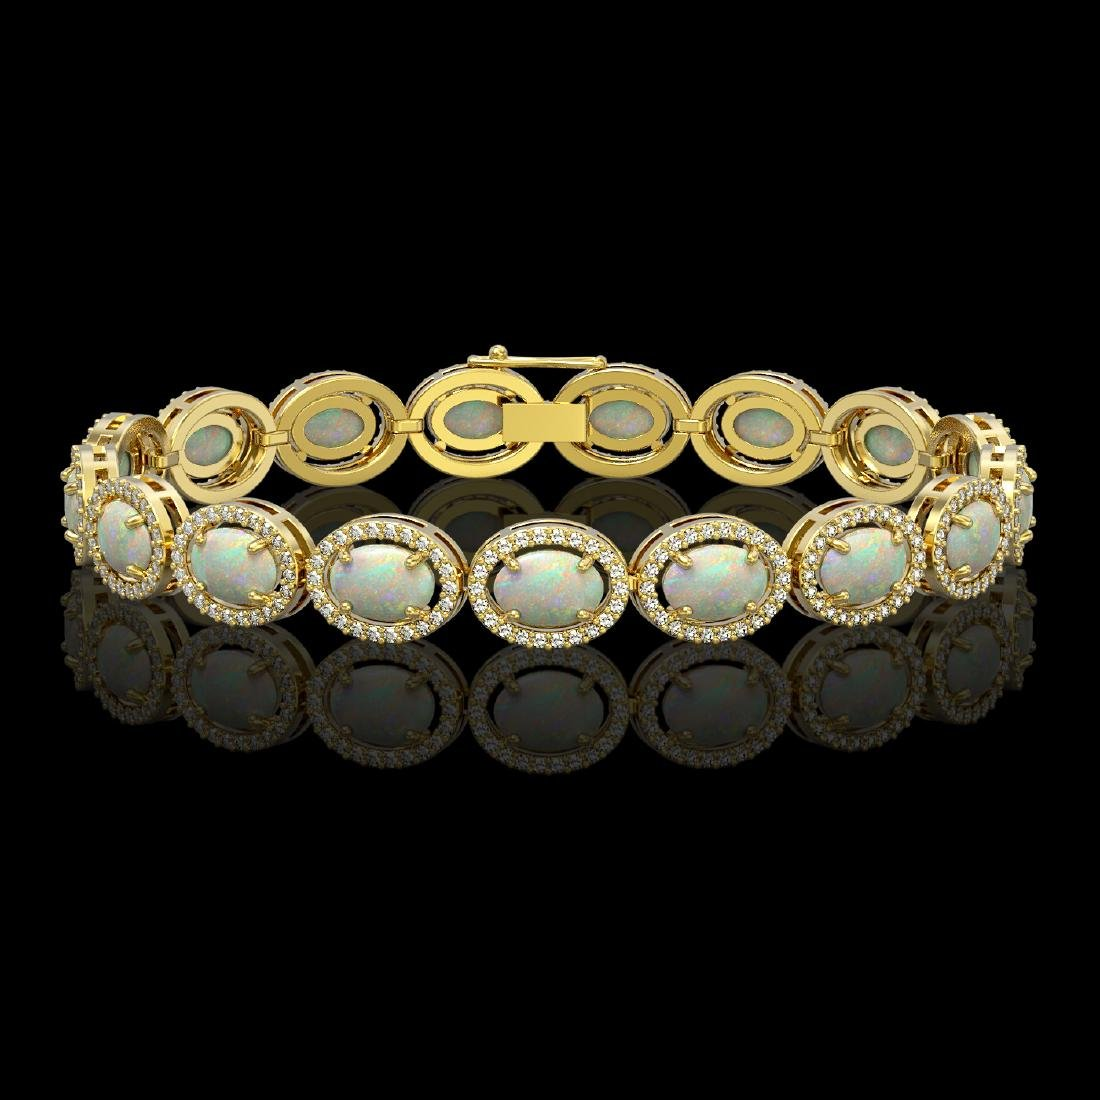 14.24 CTW Opal & Diamond Halo Bracelet 10K Yellow Gold